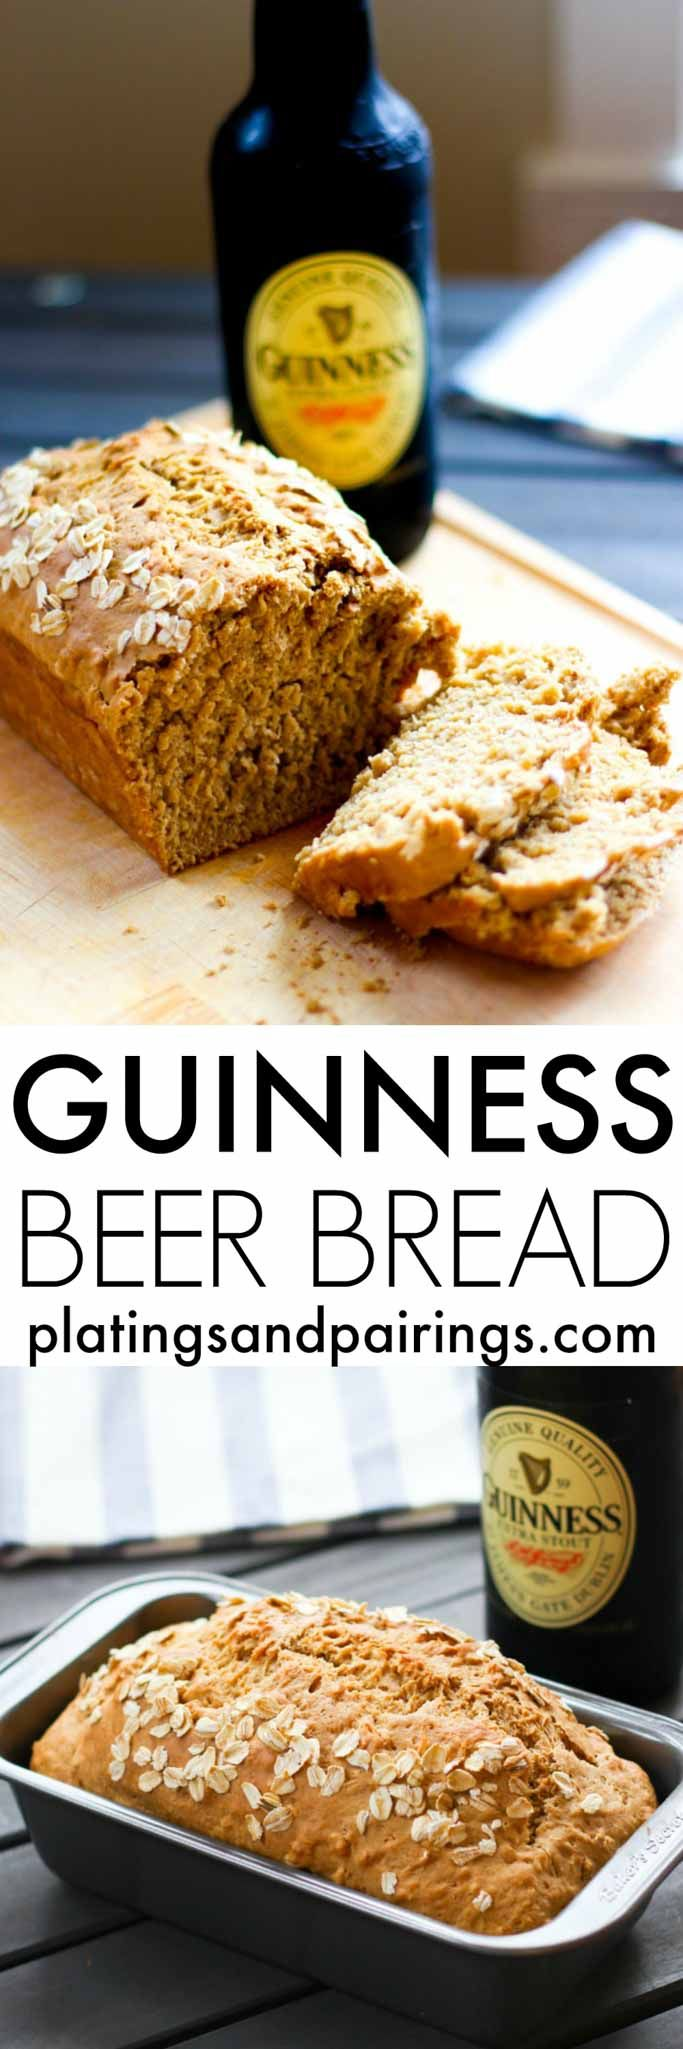 Guinness Beer Bread - Easy to make with no rising time. | platingsandpairings.com